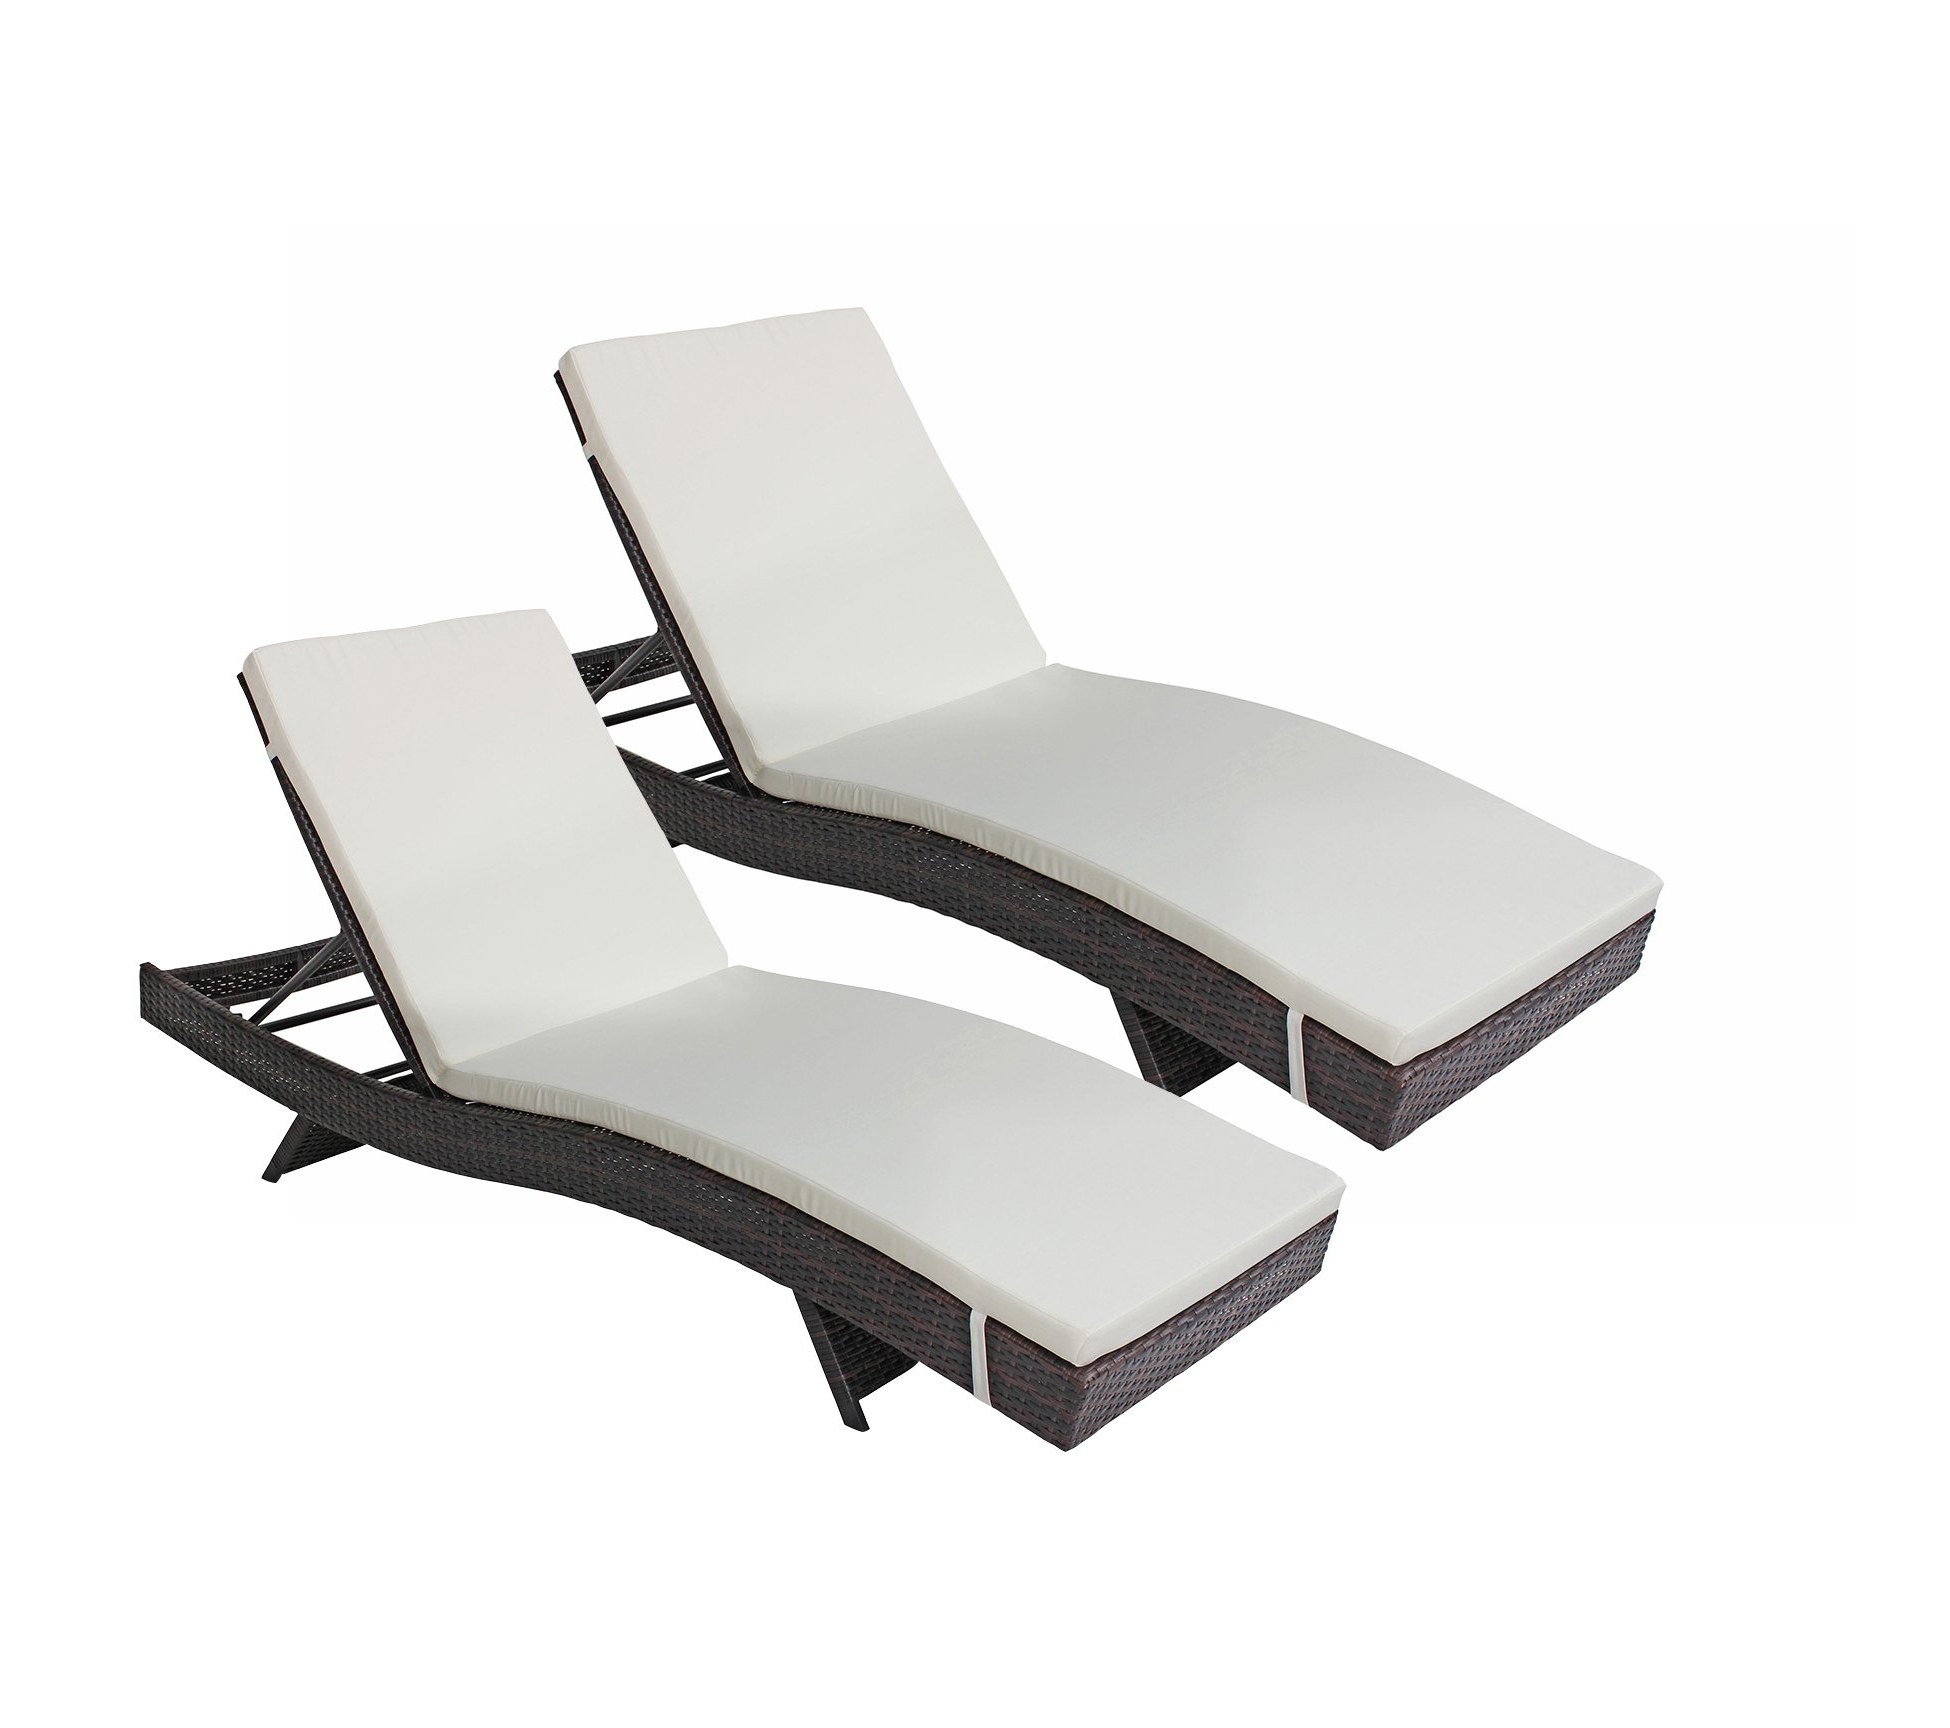 Cheap Modern Outdoor Chaise Lounge Chairs, Find Modern Pertaining To Most Current Floral Blossom Chaise Lounge Chairs With Cushion (View 11 of 25)